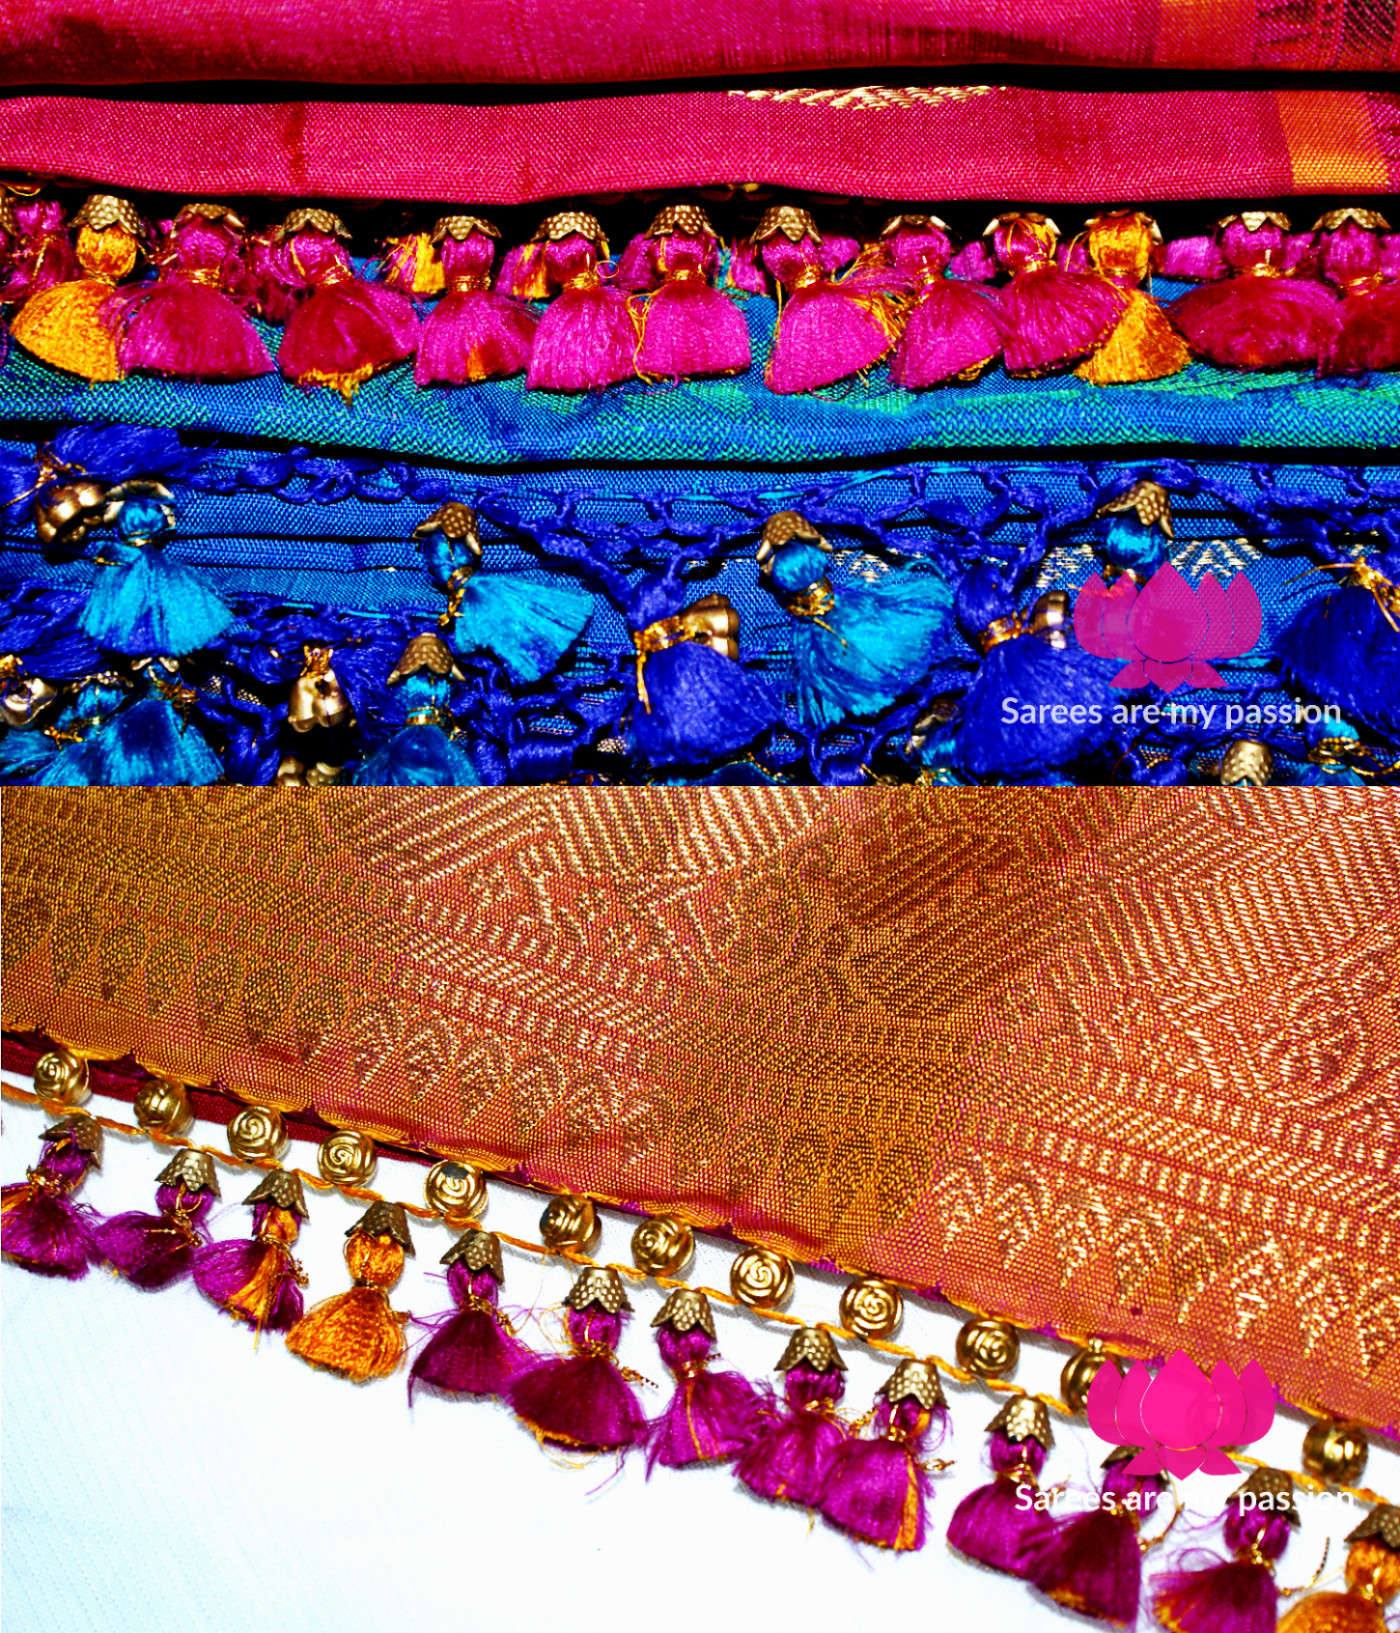 My First Saree Tassels - Sarees are my passion